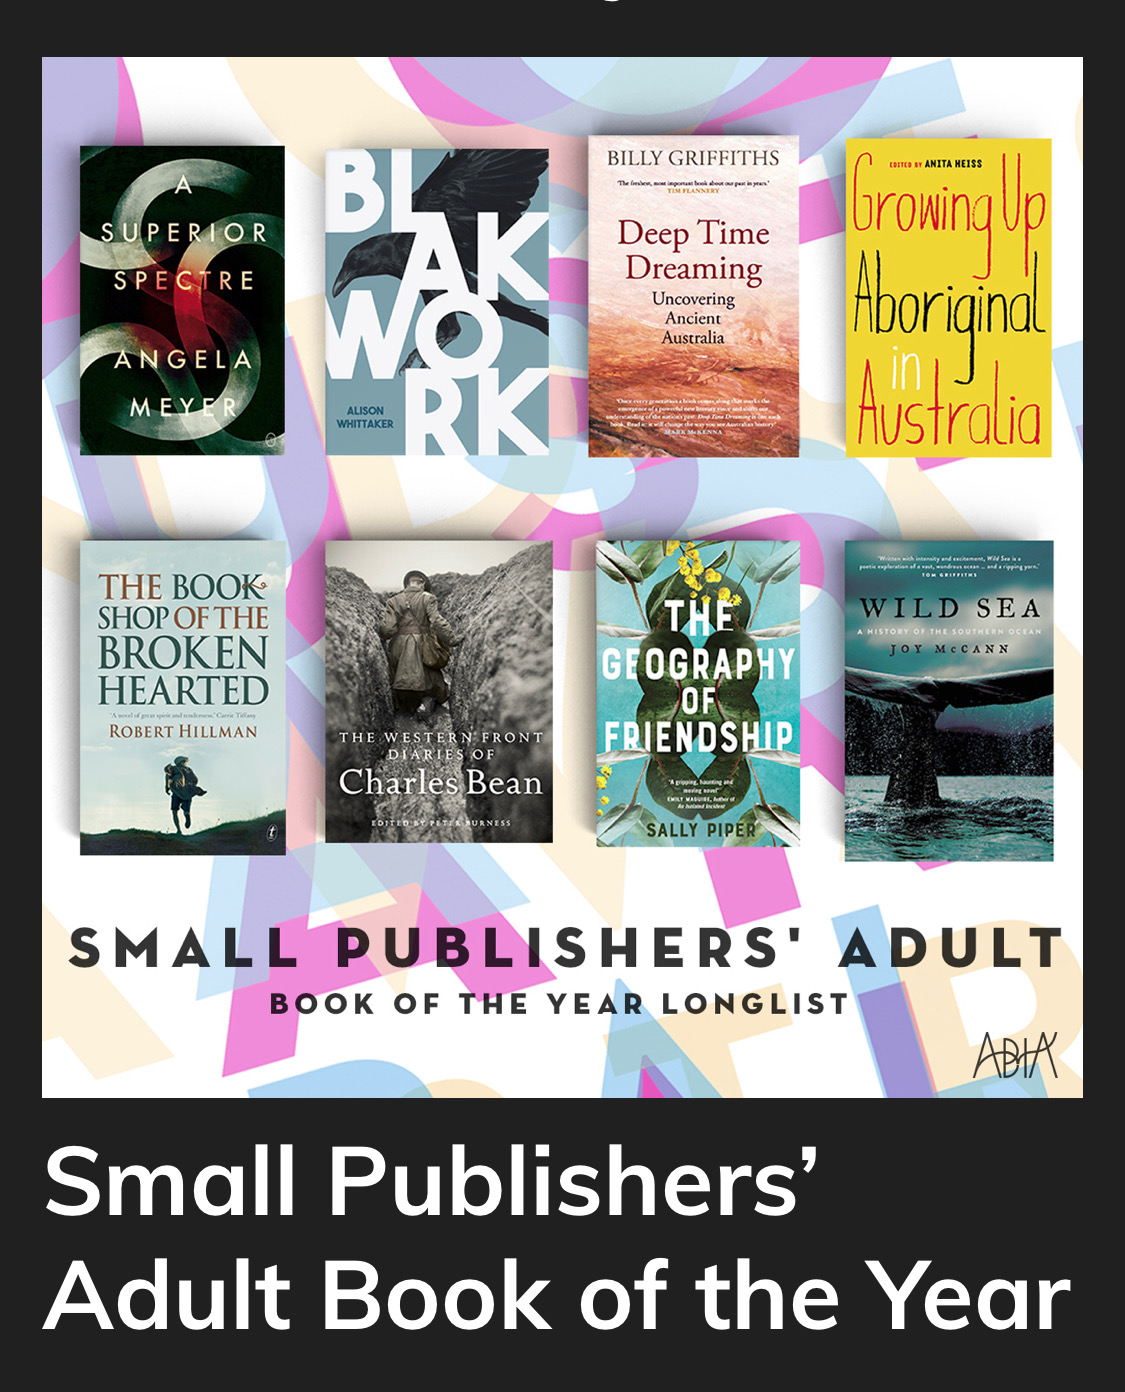 ABIA Longlist March 2019.jpg